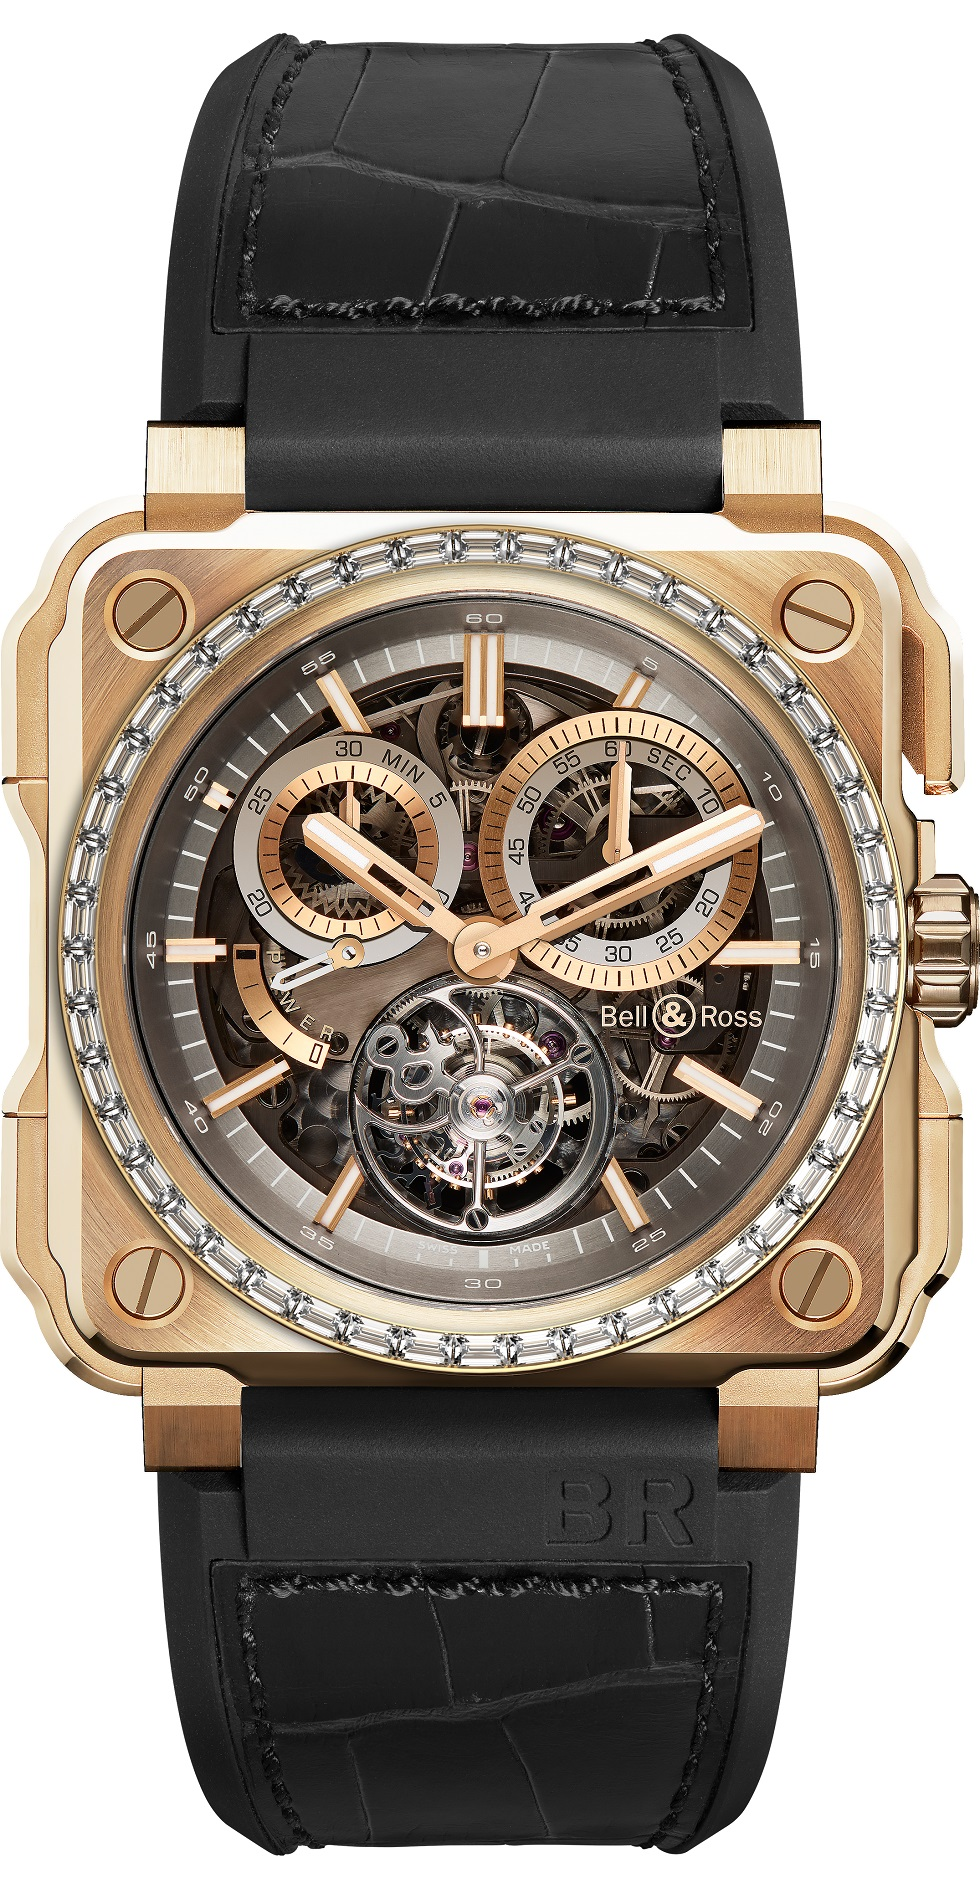 Bell & Ross BR-X1 Chronograph Tourbillon LE Watch